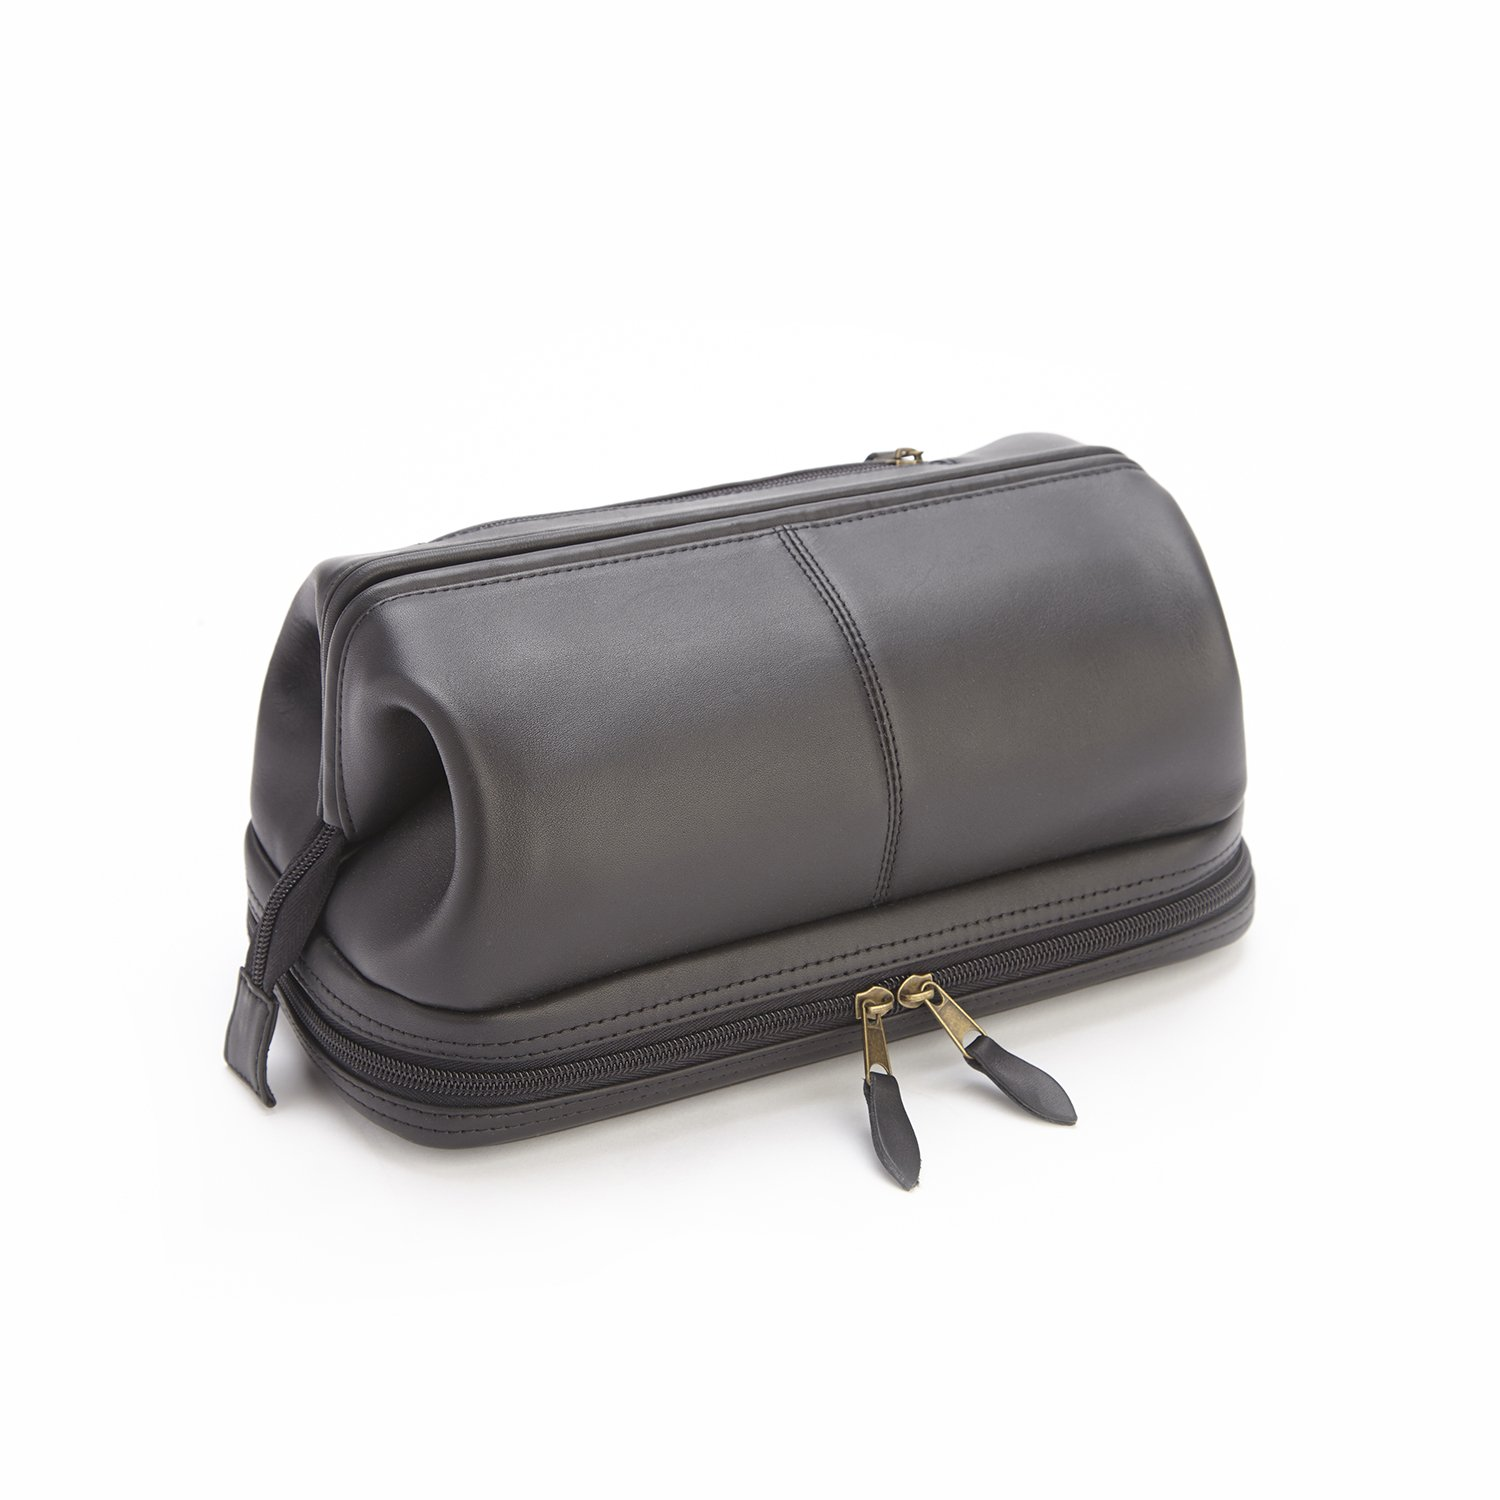 Royce Leather Toiletry Travel Wash Bag with Zippered Bottom Compartment, Black, One Size by Royce Leather